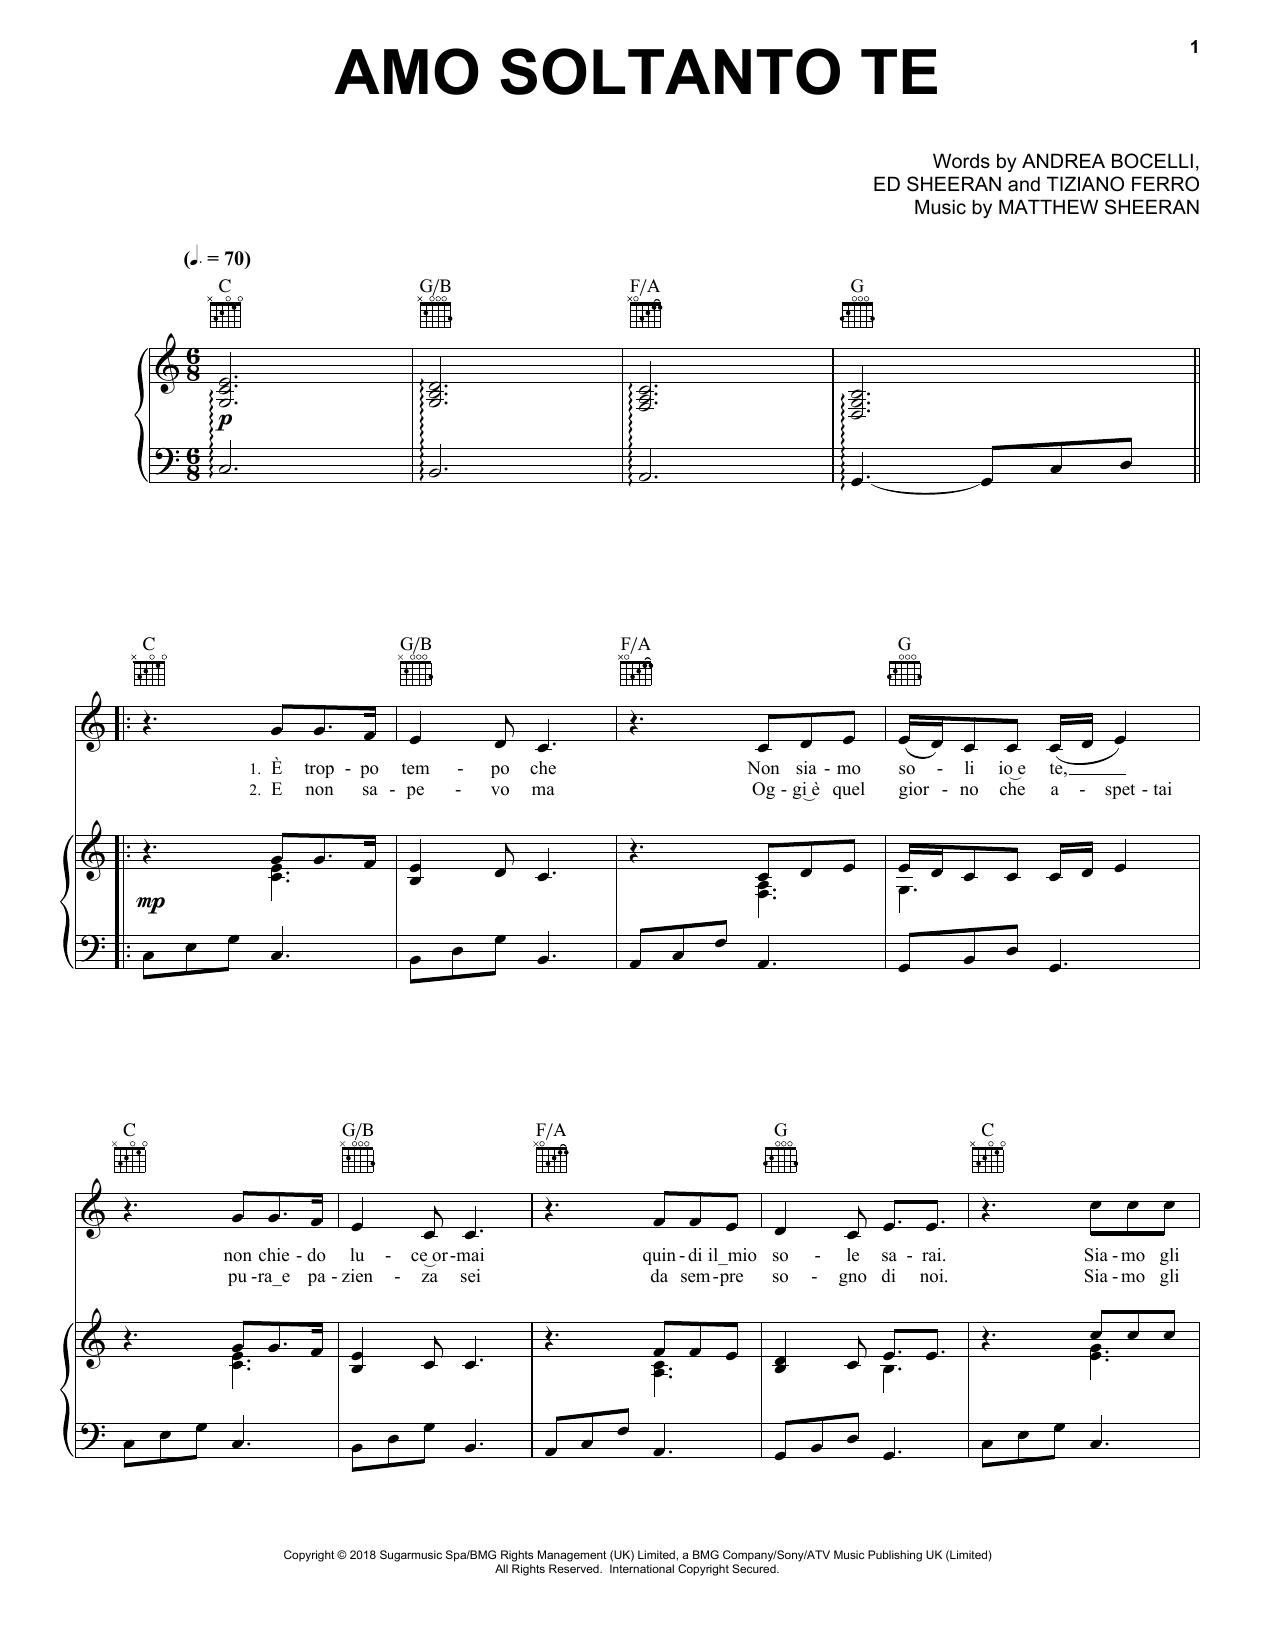 Download Andrea Bocelli 'Amo soltanto te (feat. Ed Sheeran)' Digital Sheet Music Notes & Chords and start playing in minutes